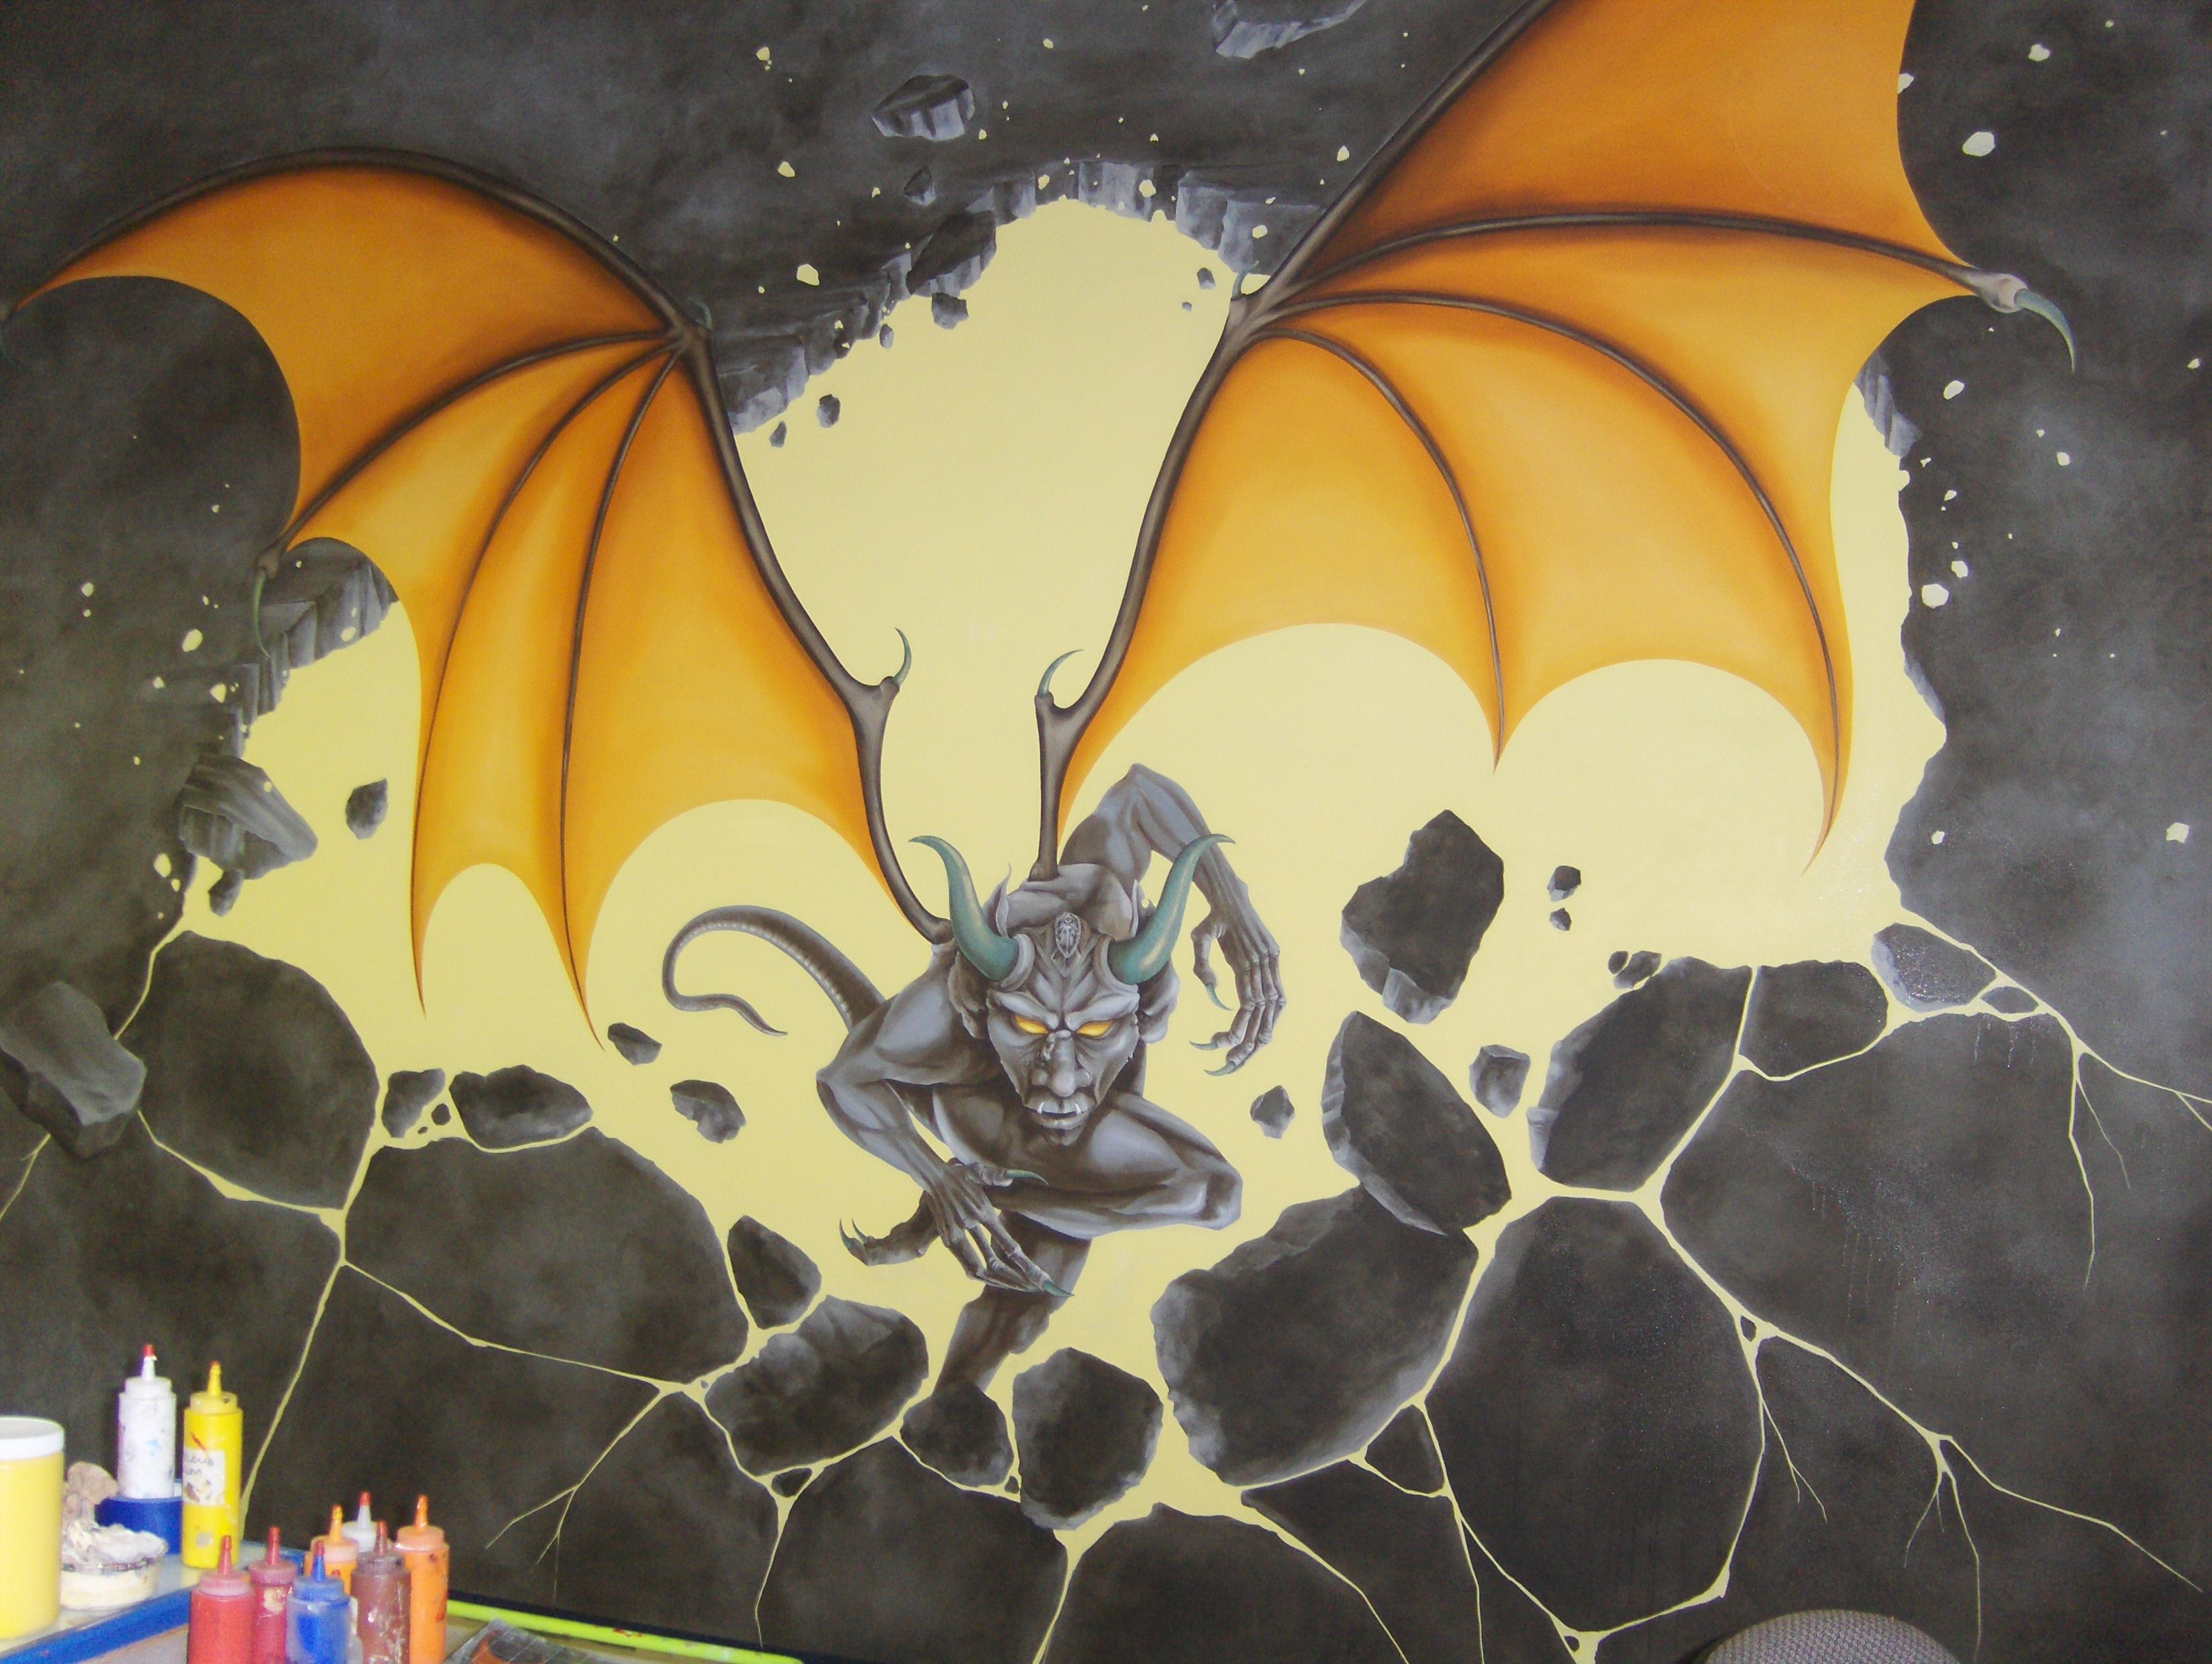 This is a 15' x 12' mural painted on canvas looking for a home. Flames have been added behind the gargoyle.